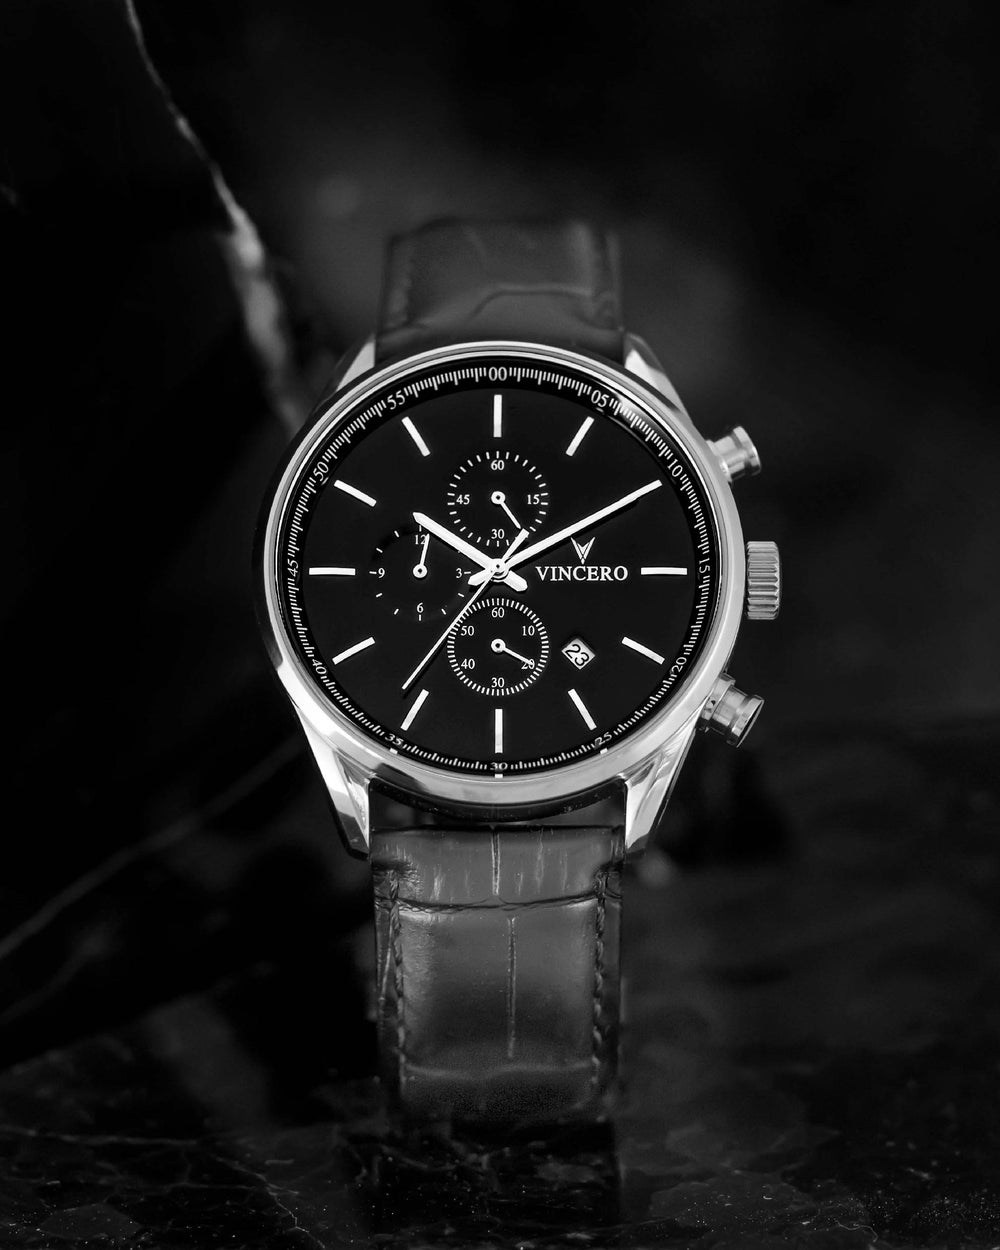 Chrono S 40mm Black Croc Italian Leather Strap Black Watch Face Silver Case Clasp Silver Accents